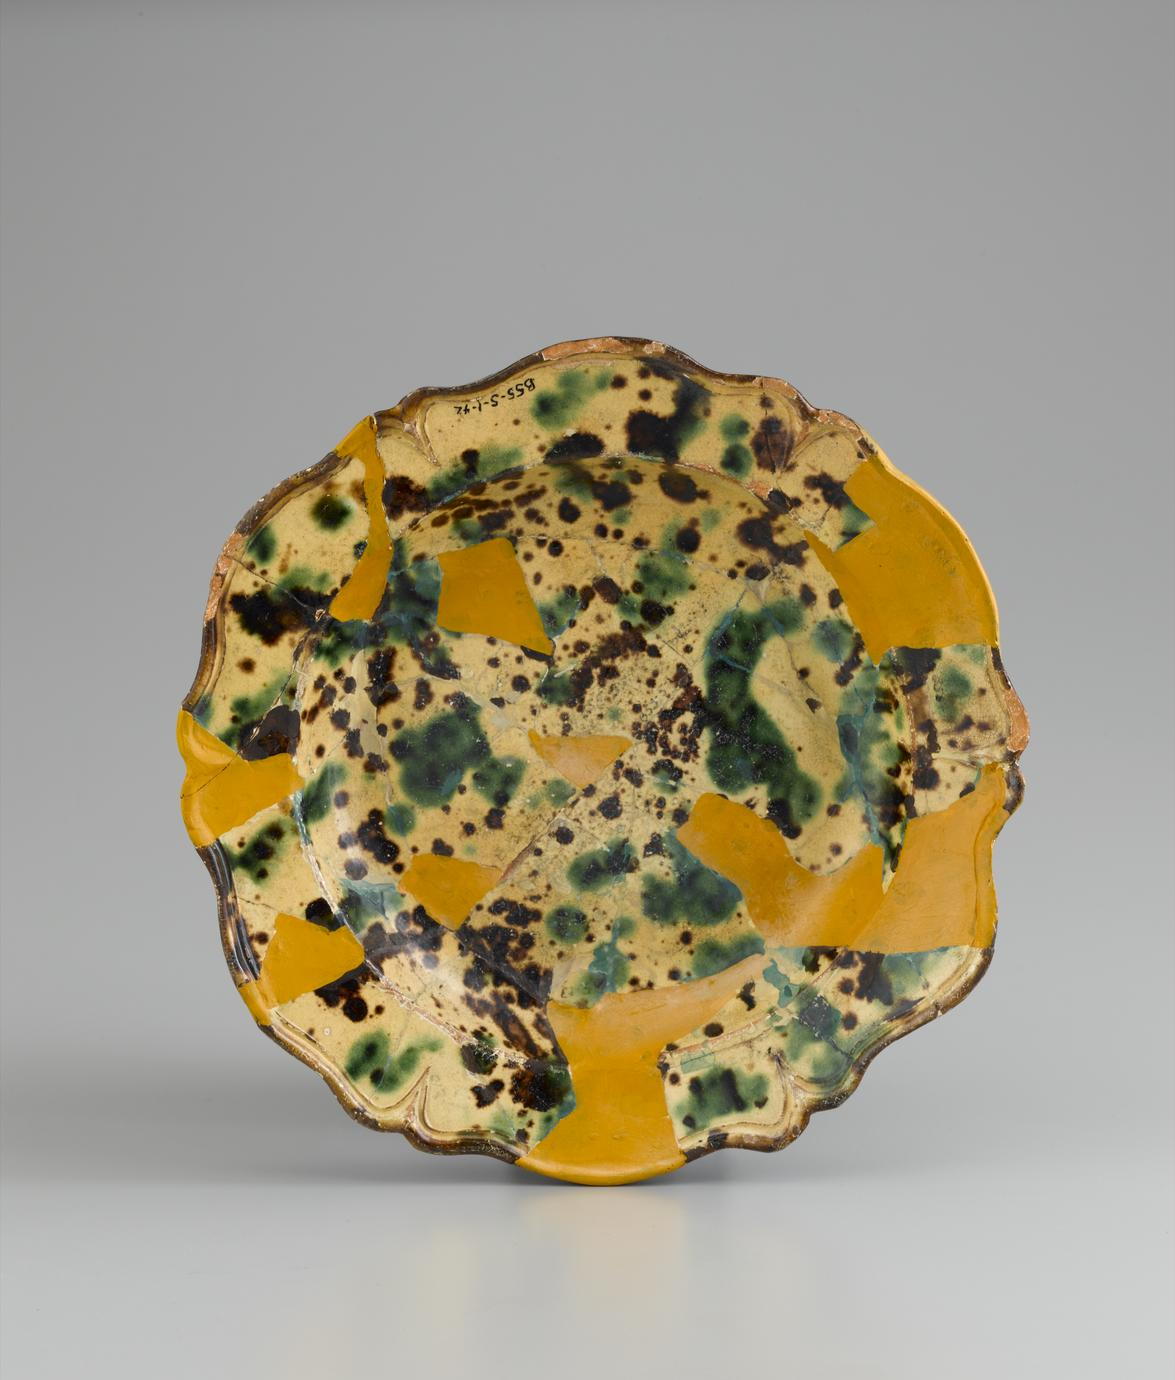 Plate (1 of 3)